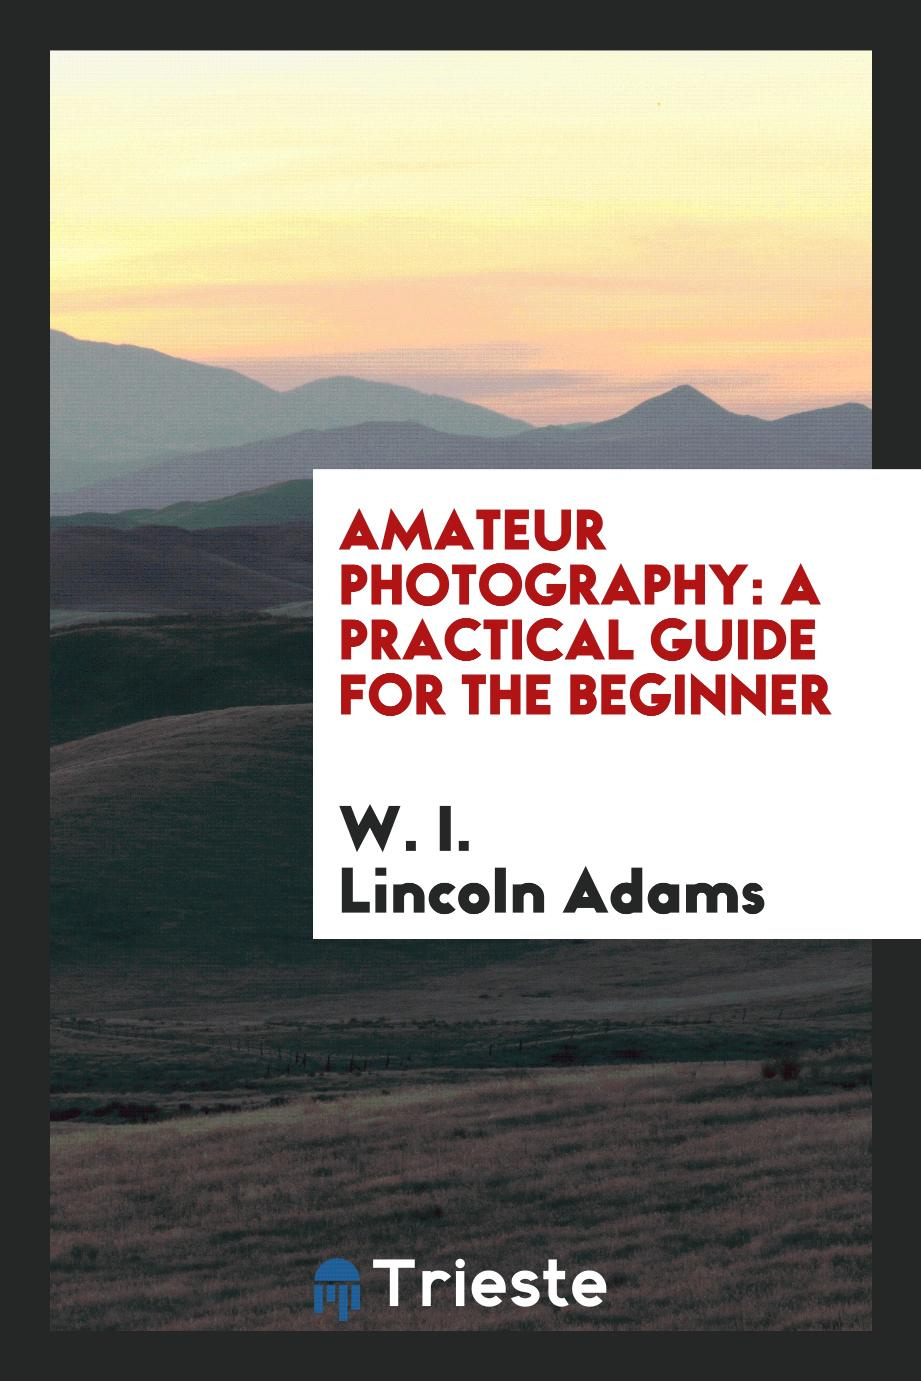 Amateur Photography: A PracticaL Guide for the Beginner